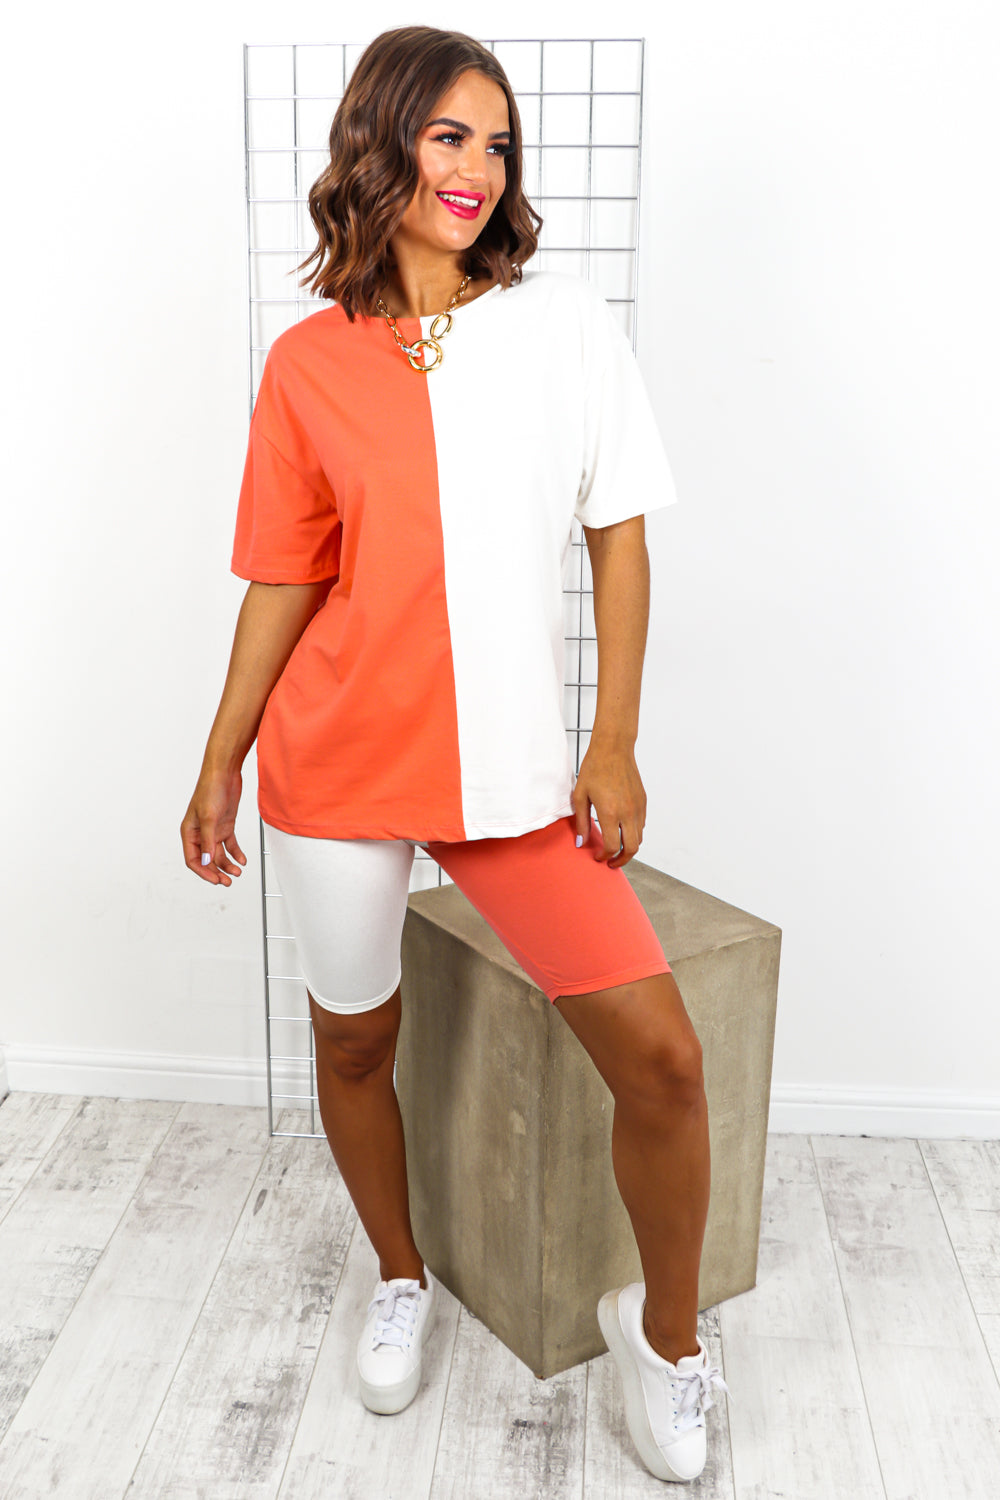 Coral And White Contrast Cycle Short And T-shirt Coordinate Set DLSB Womens Fashion